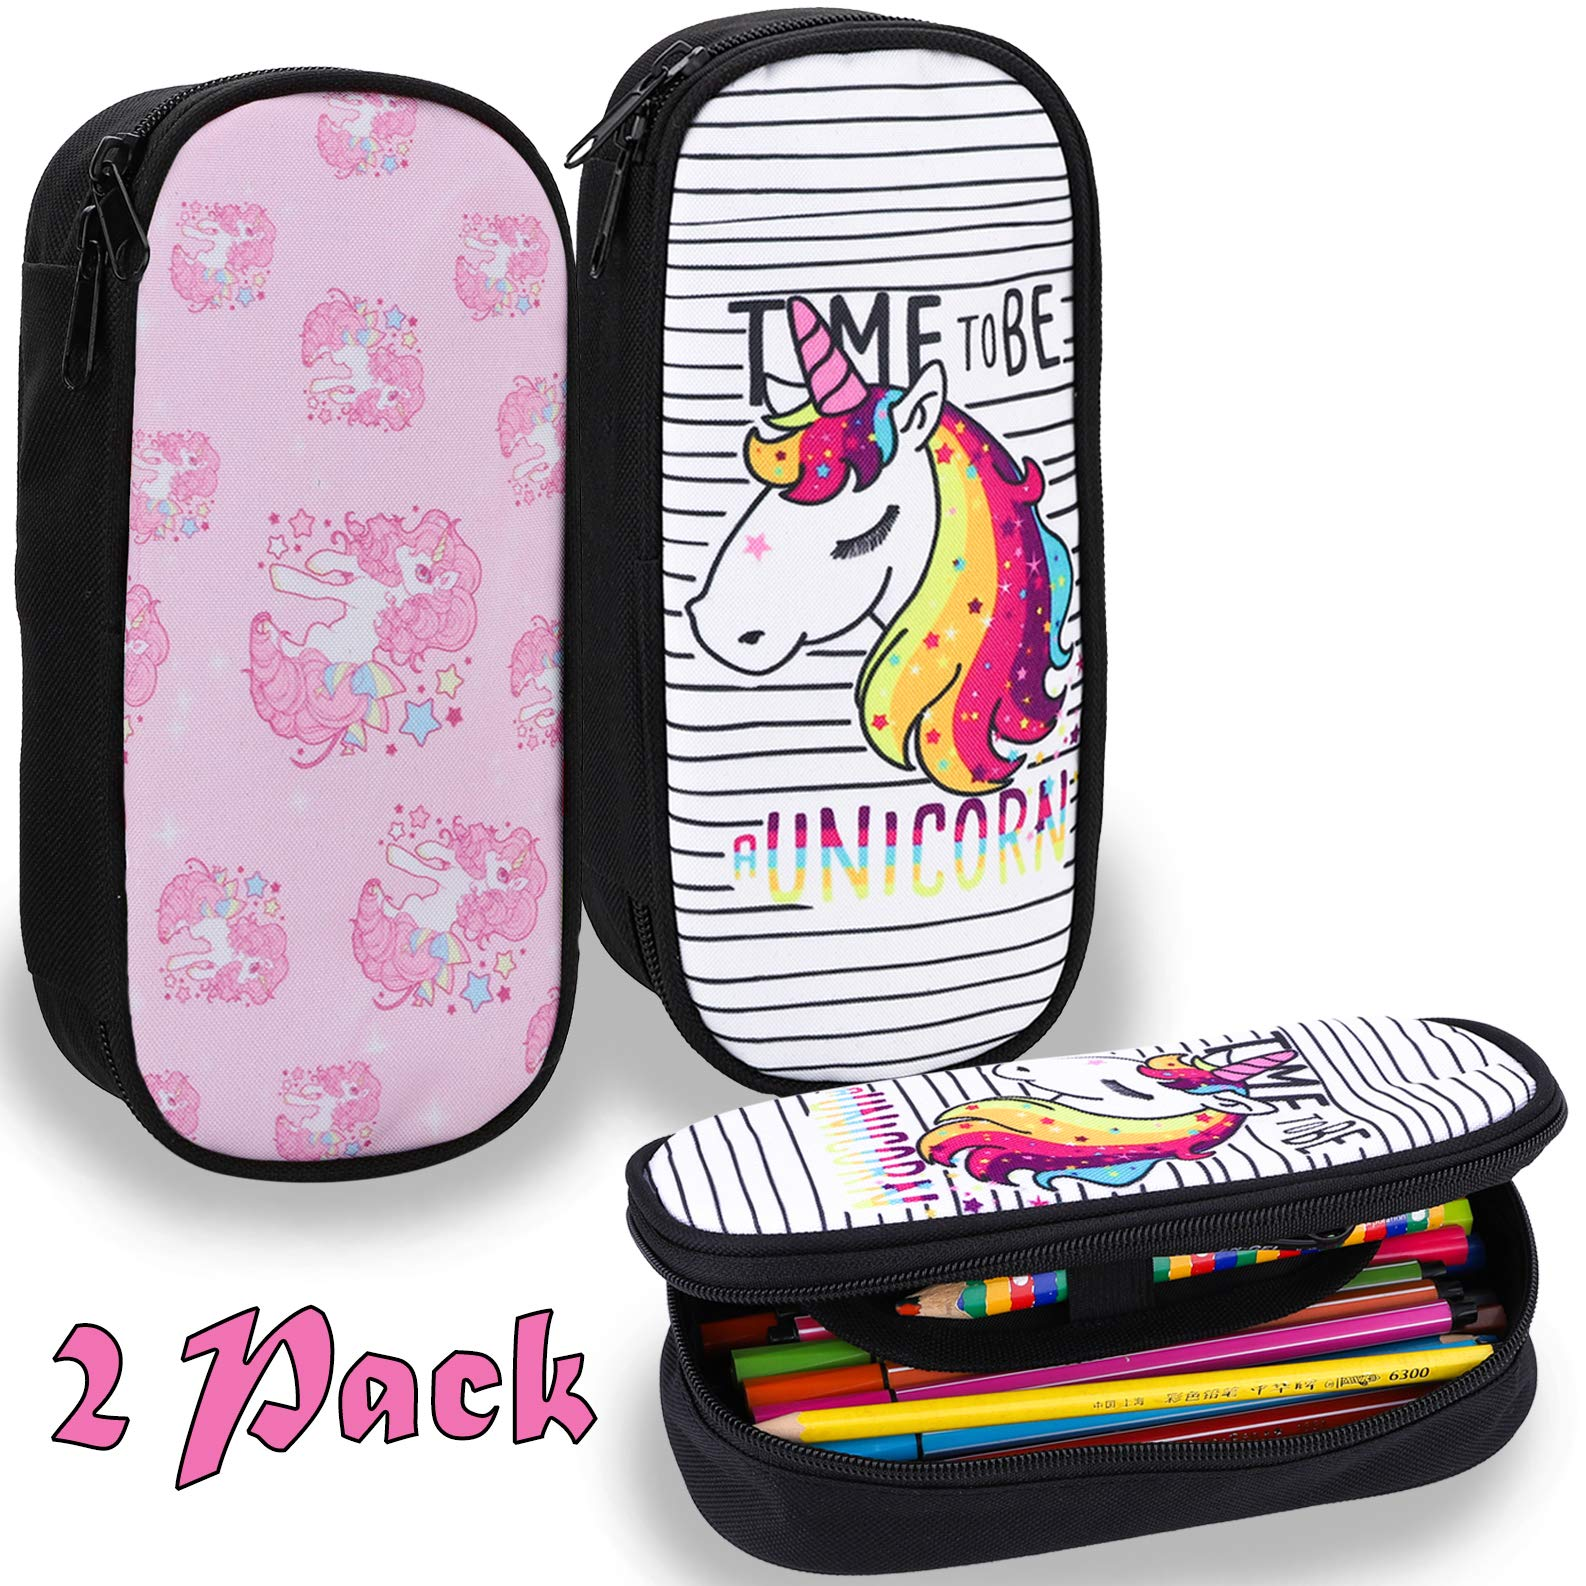 BEYUMI Cute WhiteΠnk Unicorn Pencil Case 2 Pack, up to 50 Pens High Capacity Pencil Pouch Stationery Organizer Multifunction Cosmetic Makeup Bag, Perfect Holder Student Adult Office High School